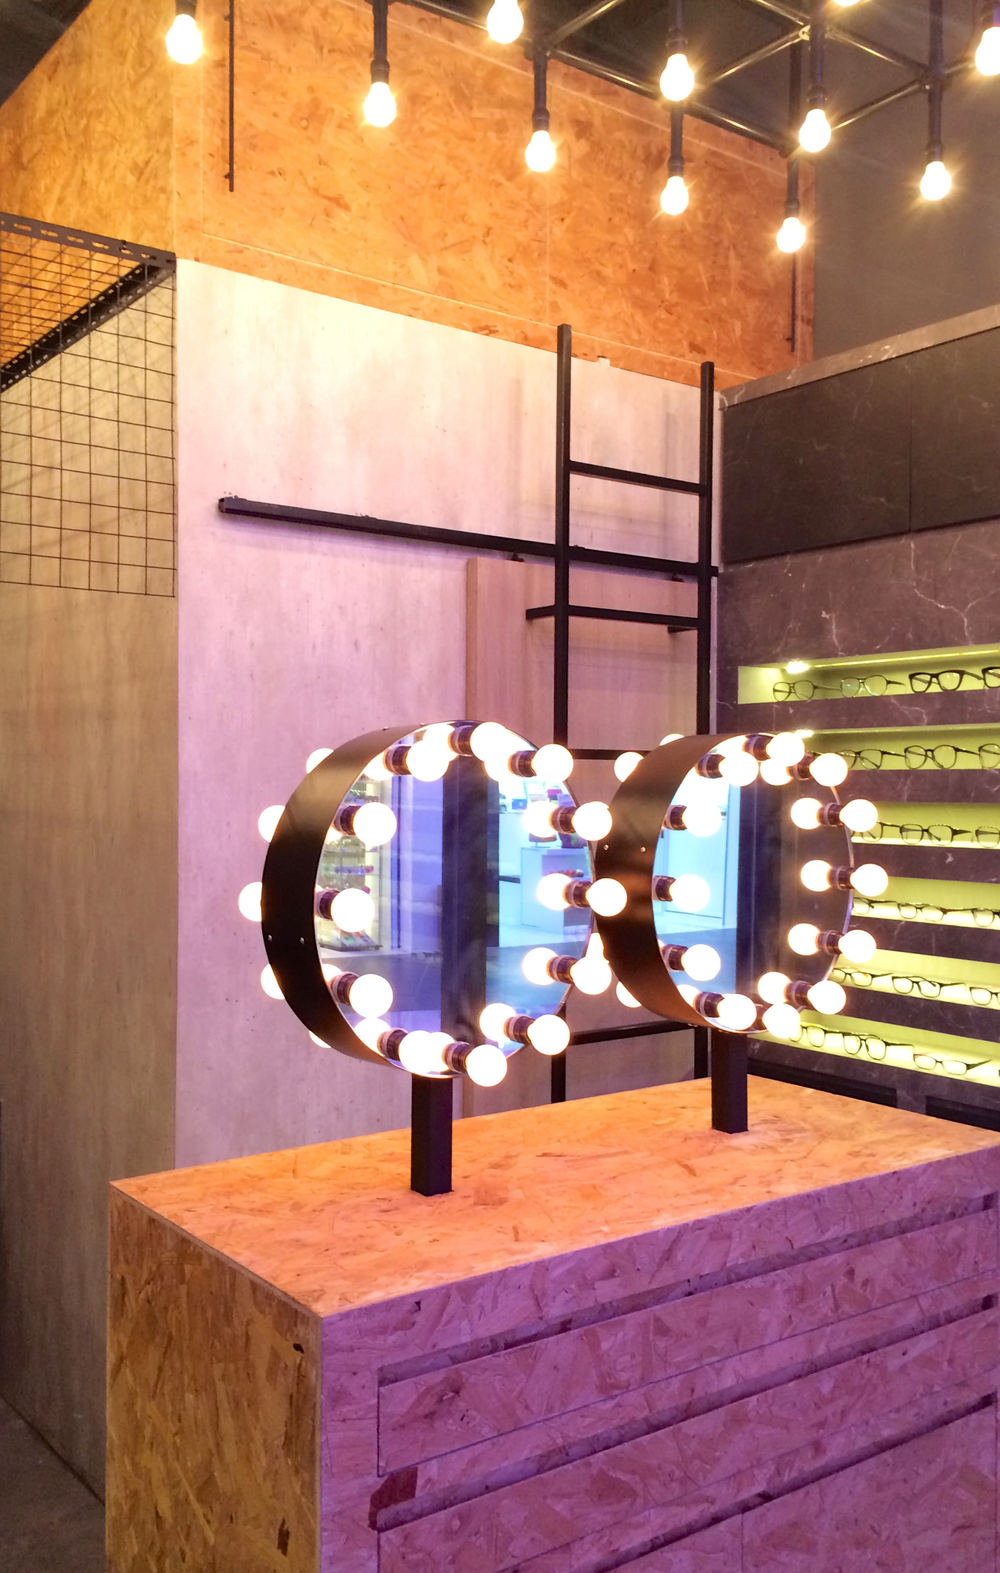 Visual Mass // Display Stand with Mirrors & Bulbs